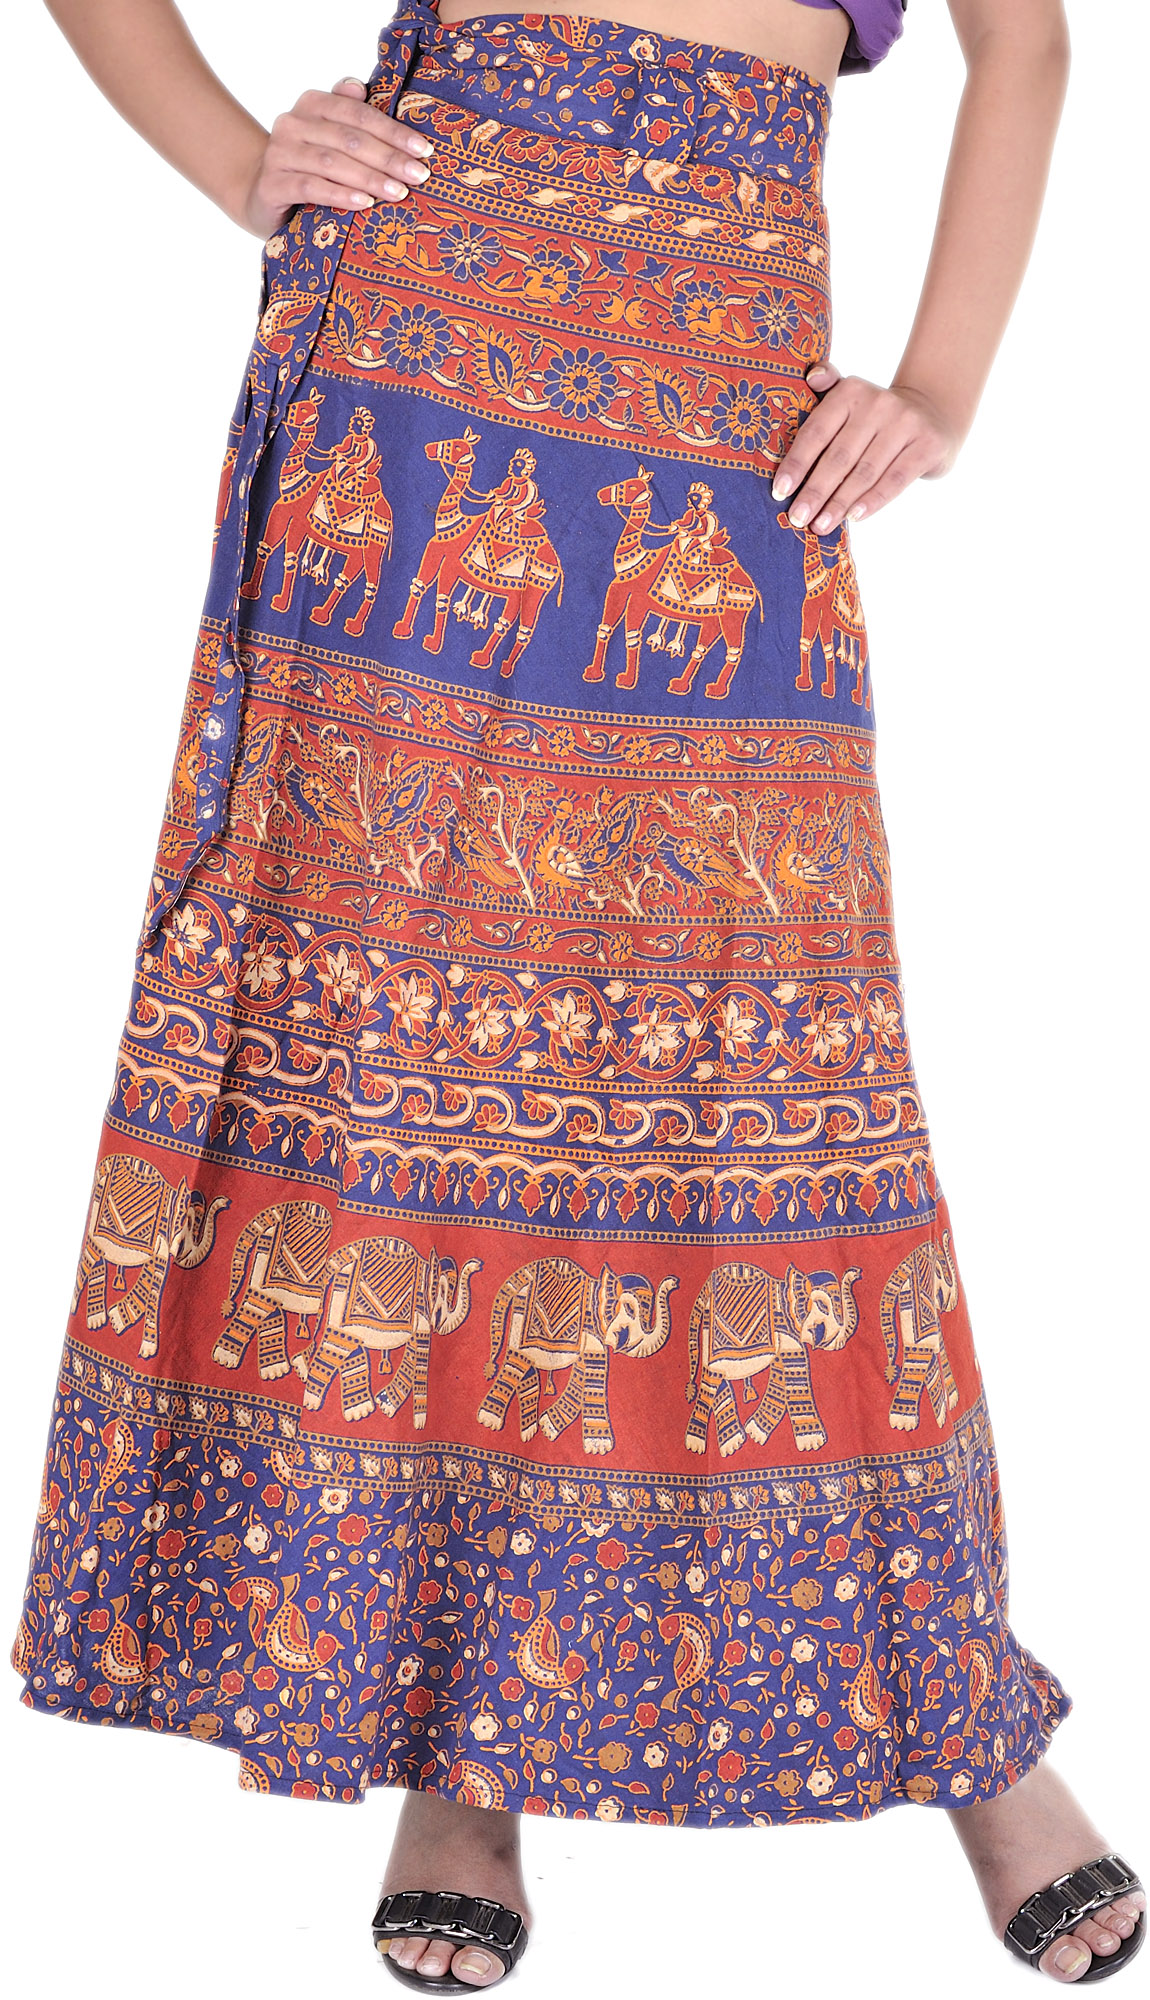 navy blue wrap around skirt with printed camels and